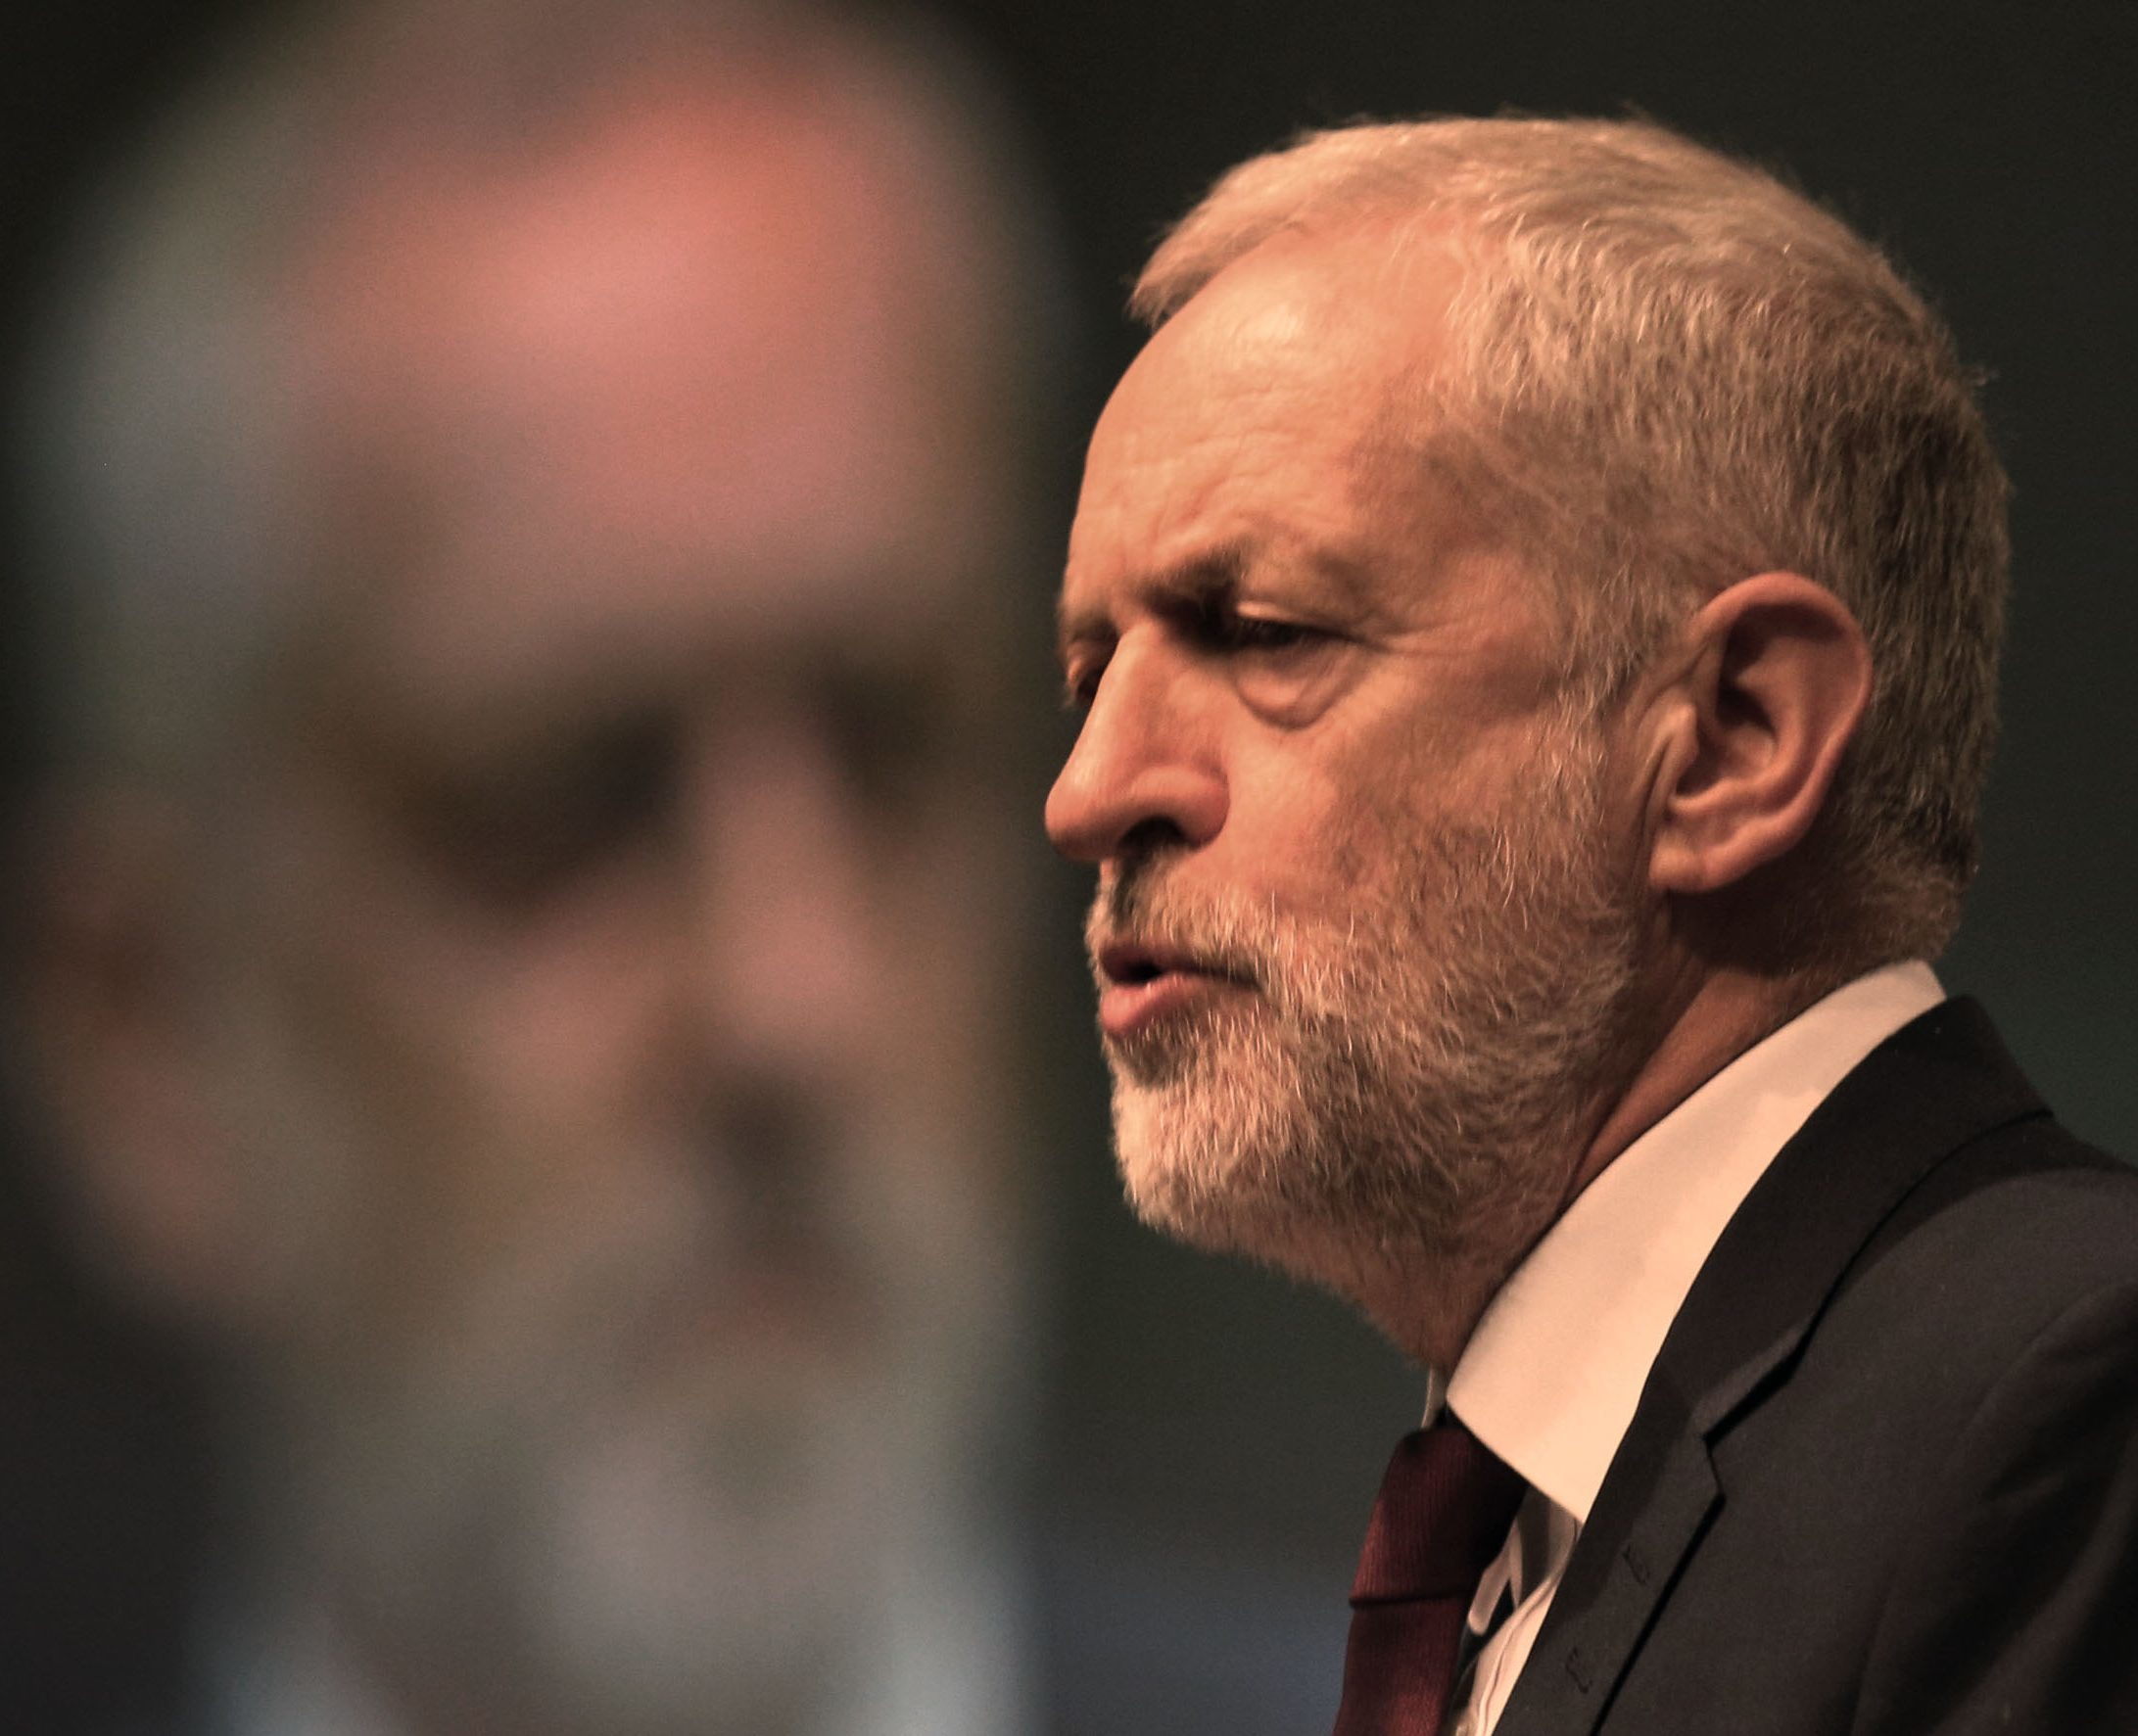 """Labour leader Jeremy Corbyn addressing the Unite union's Scottish policy conference in Aviemore, where he said that the party is undergoing a """"rebirth"""" in its former Scottish heartlands. (David Cheskin/PA Wire)"""